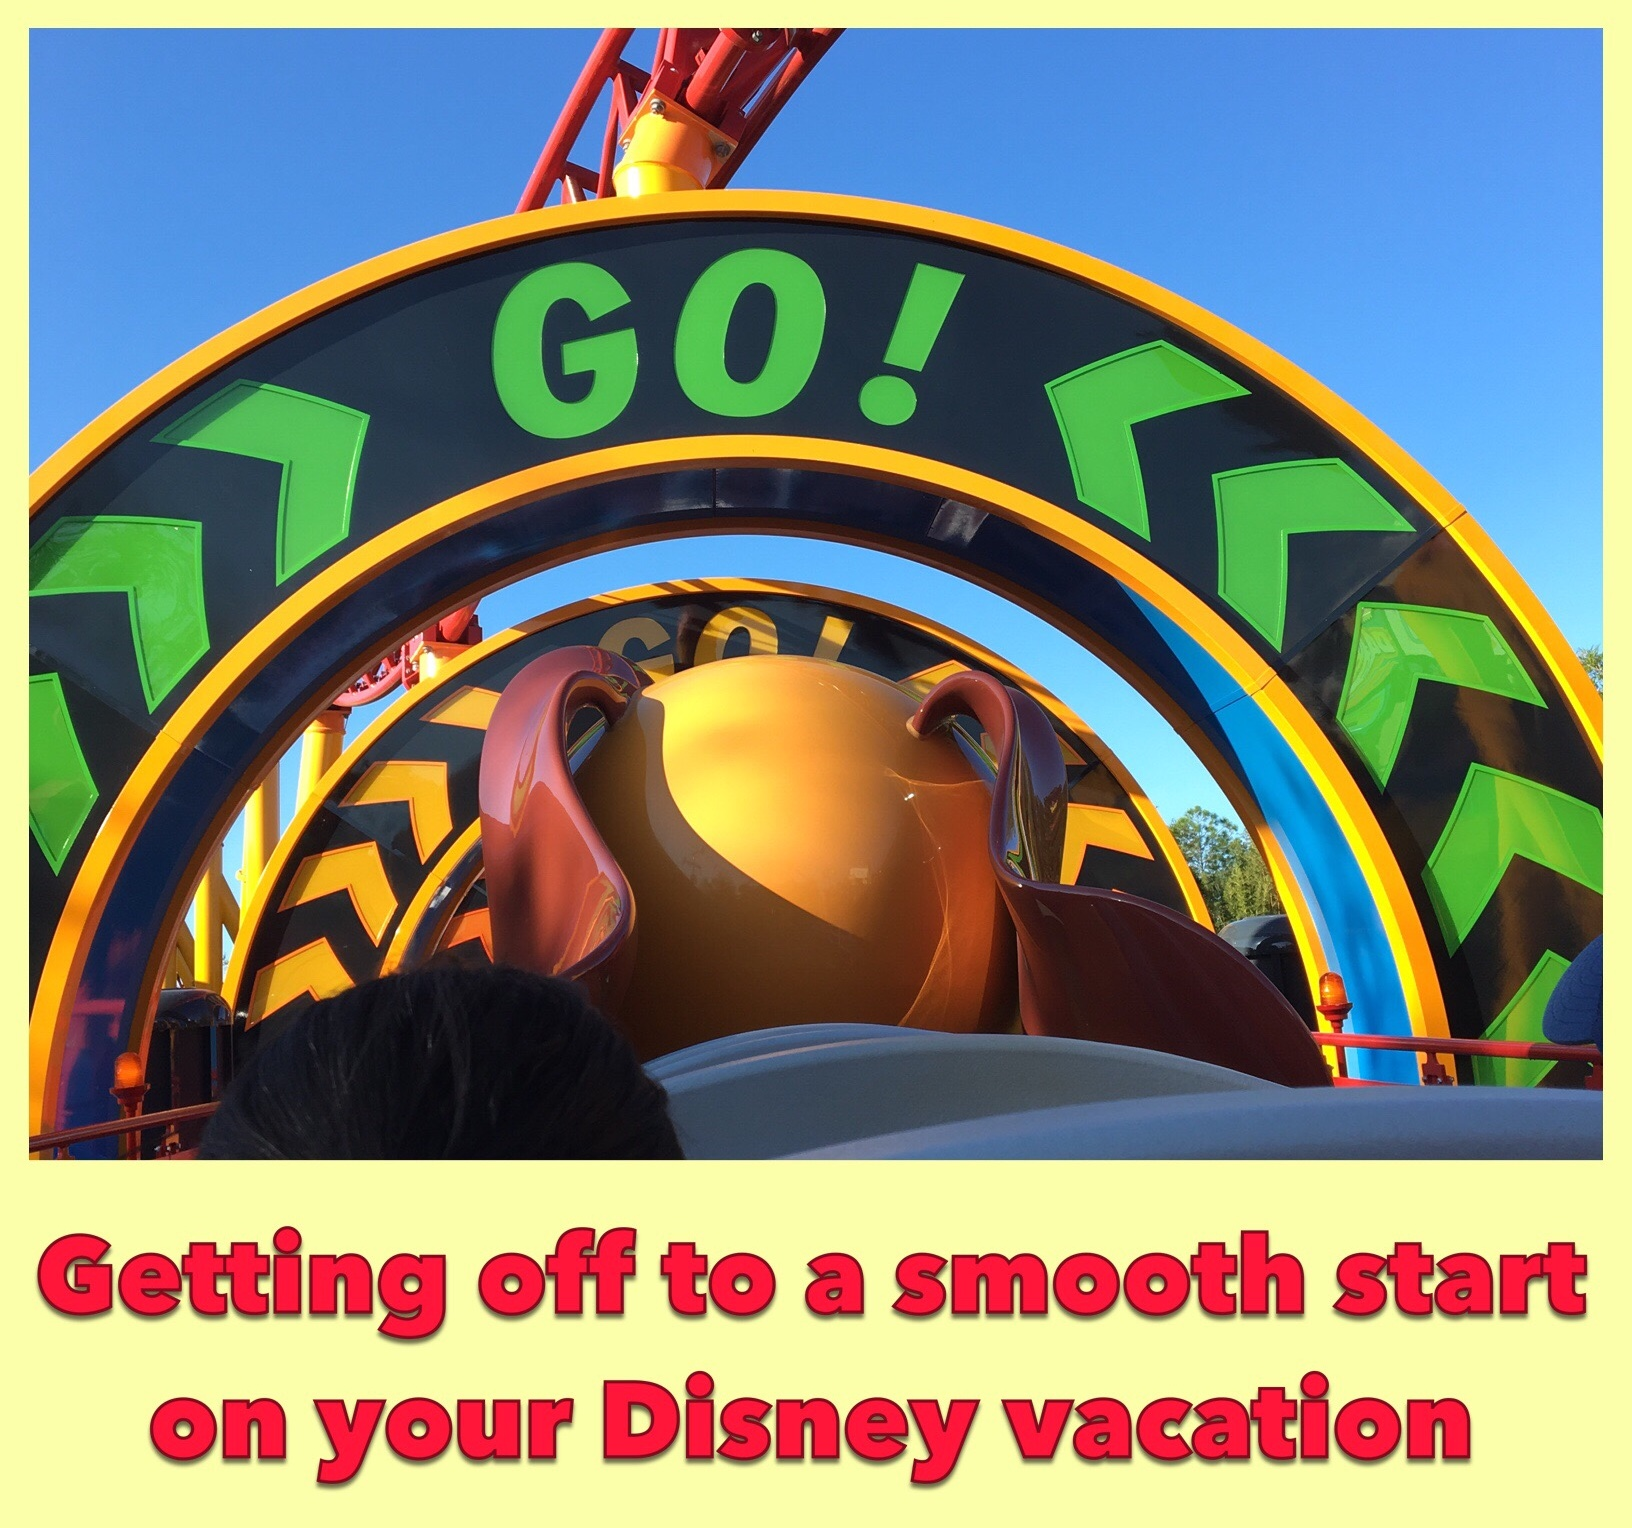 Disney Vacation Tips - Thoughts on getting off to a great start of your theme park vacation.